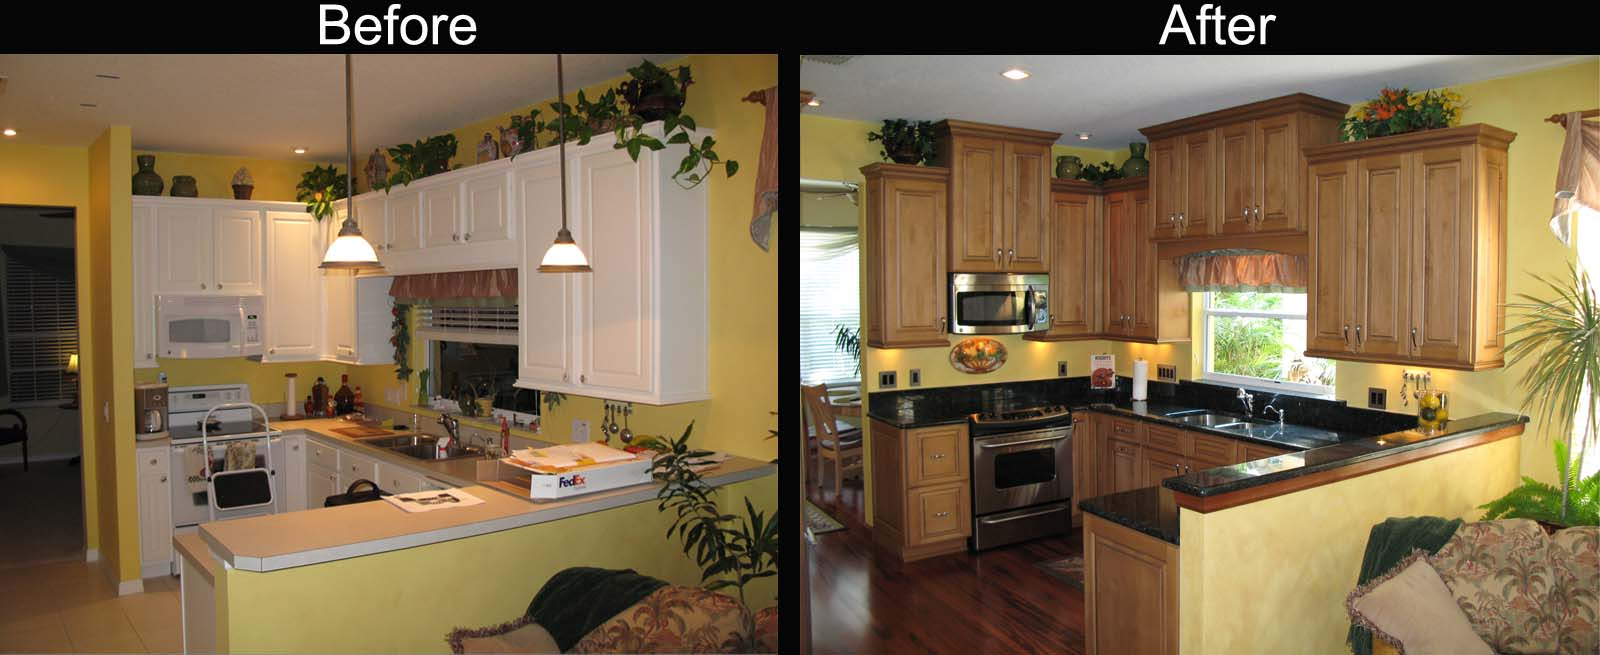 Kitchen decor kitchen remodel before and after for Kitchen remodel before after